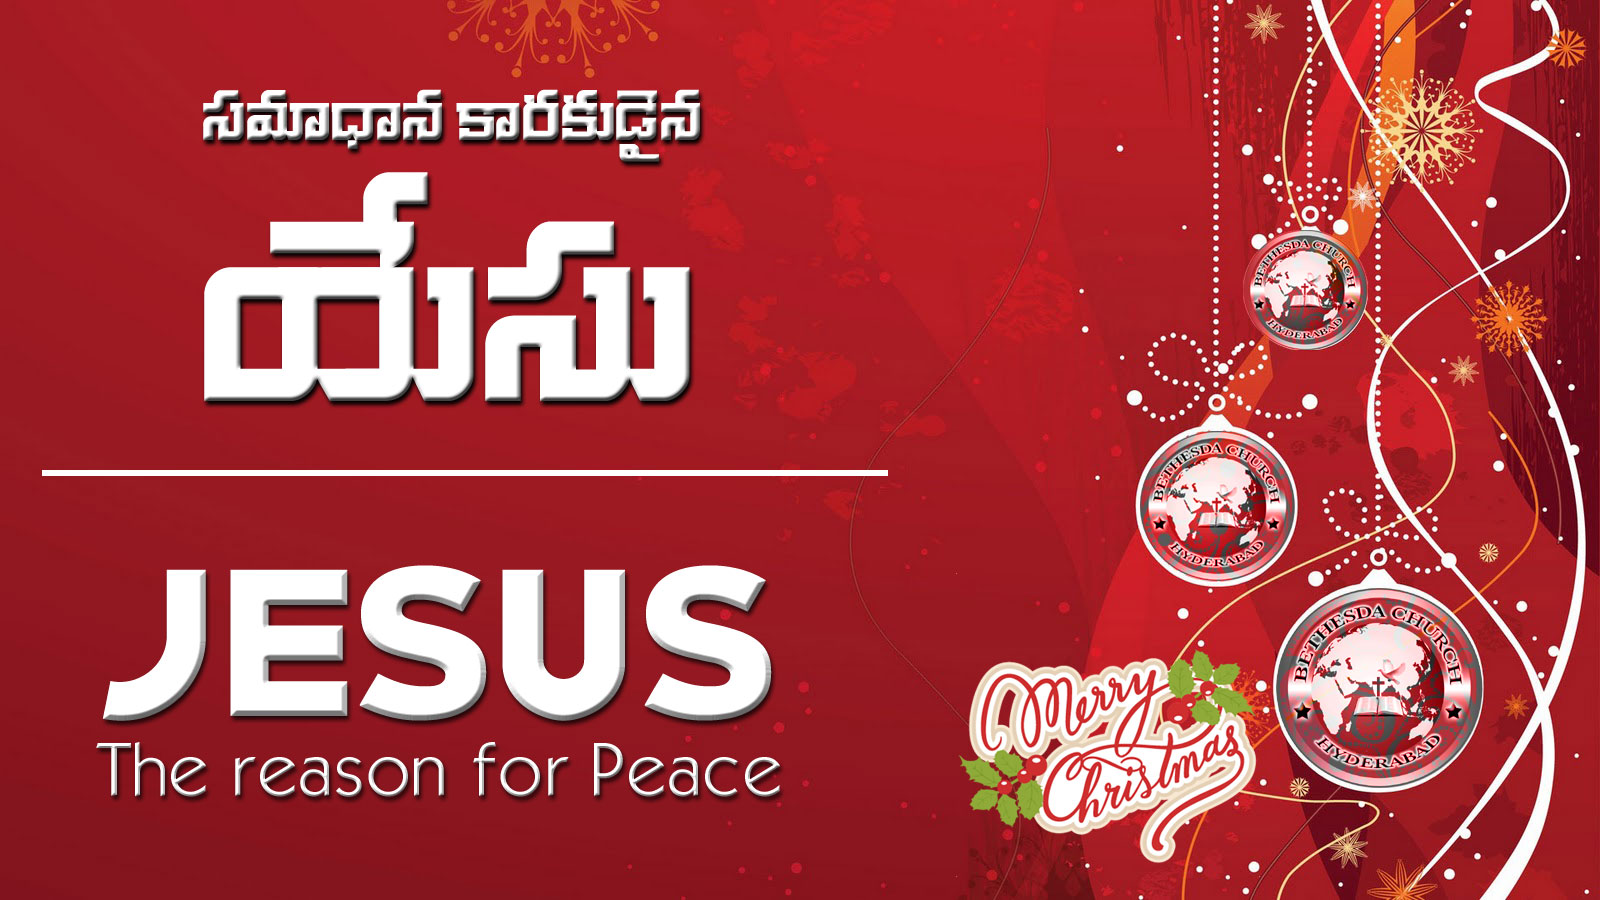 Jesus – the reason for peace (A228)